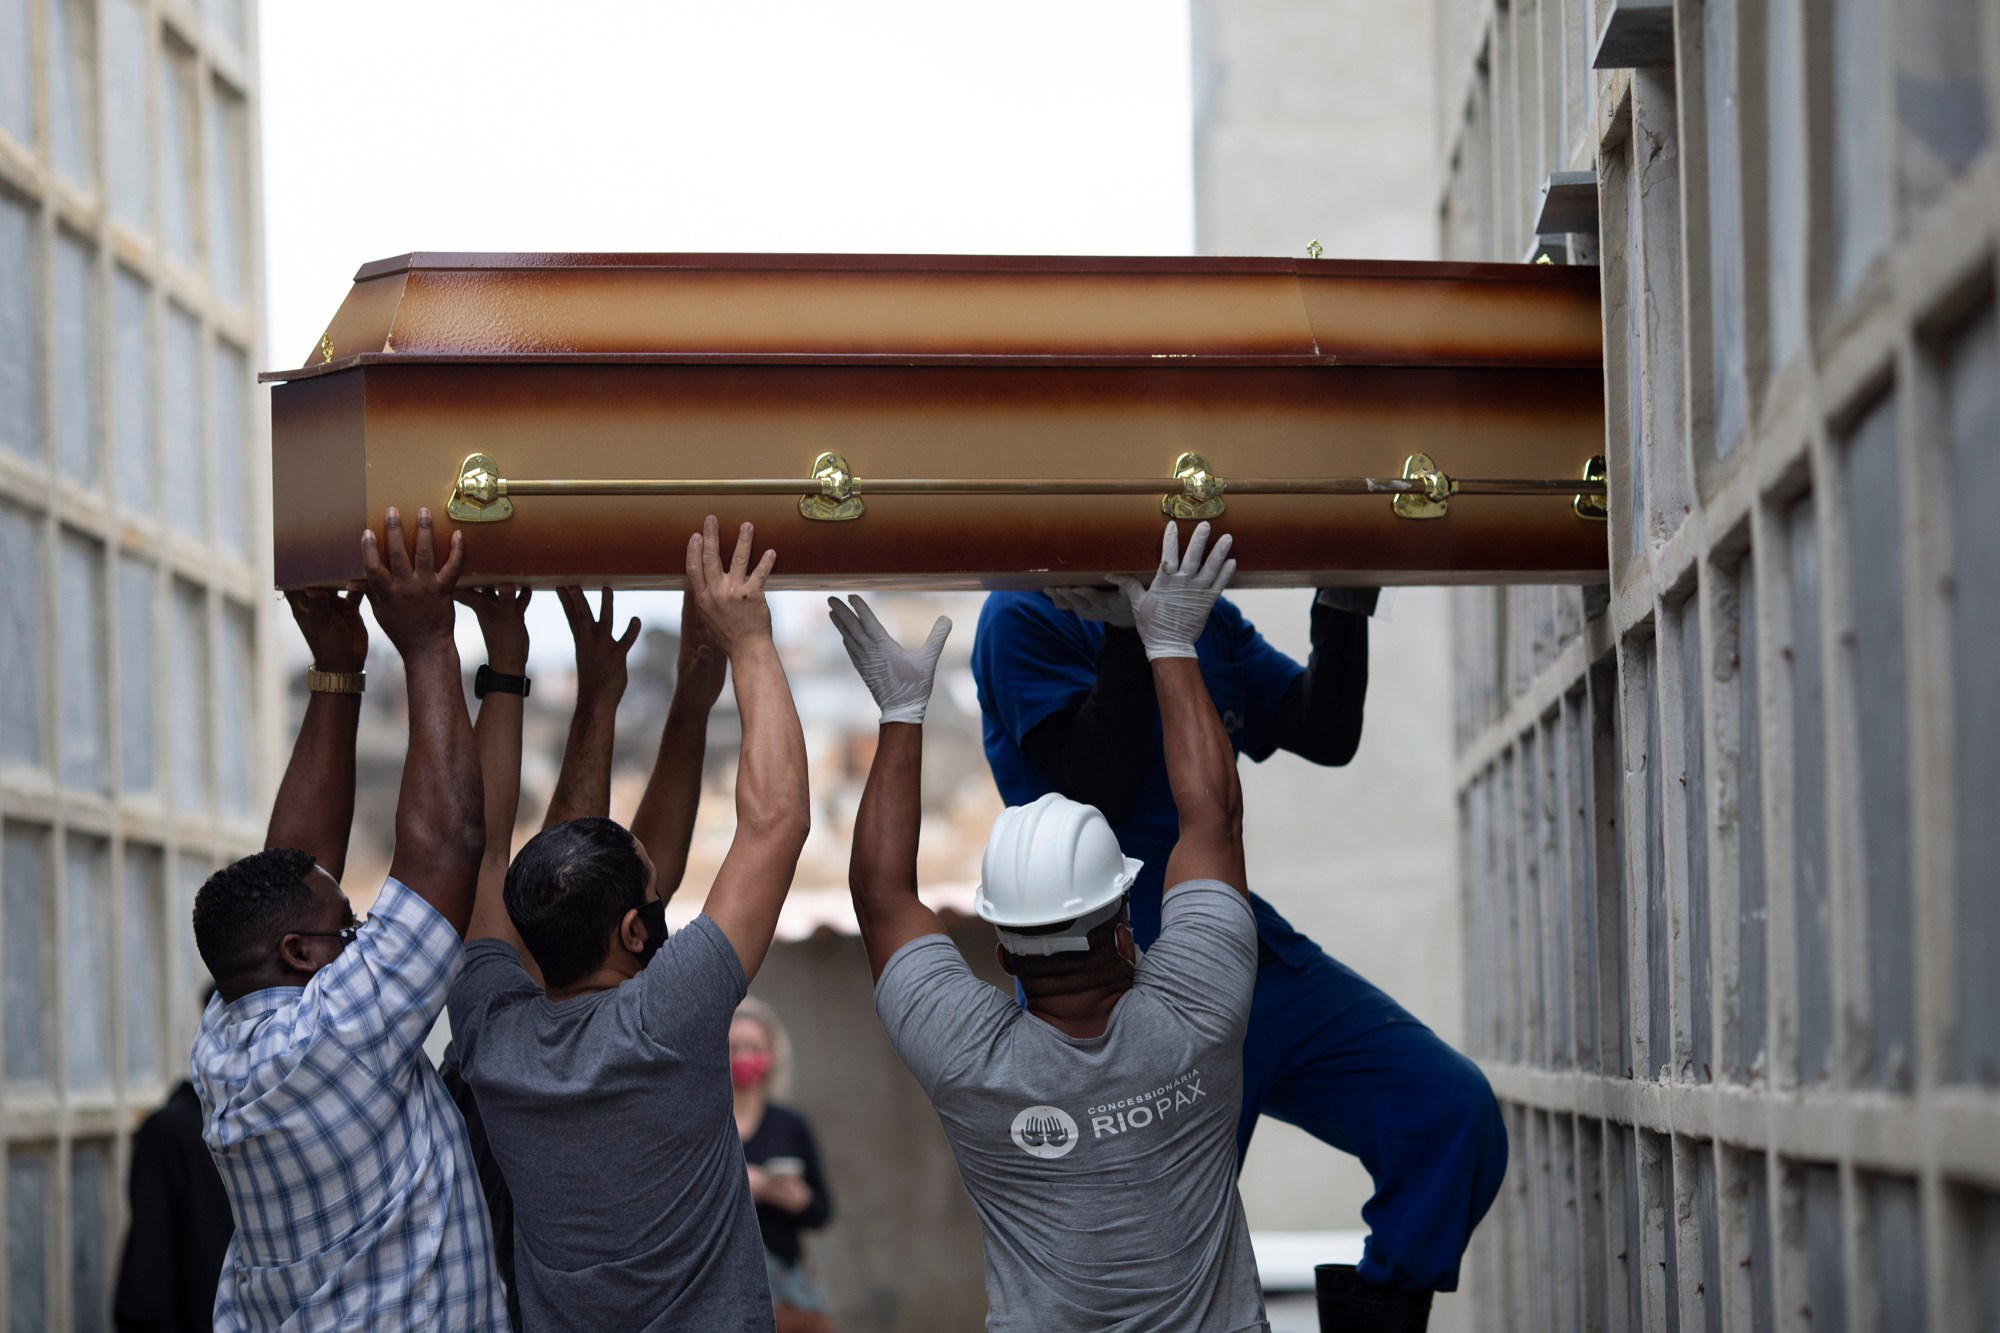 In this April 13, 2021, file photo, the remains of a woman who died from complications related to COVID-19 are placed into a niche by cemetery workers and relatives at the Inahuma cemetery in Rio de Janeiro, Brazil. (AP Photo/Silvia Izquierdo, File)